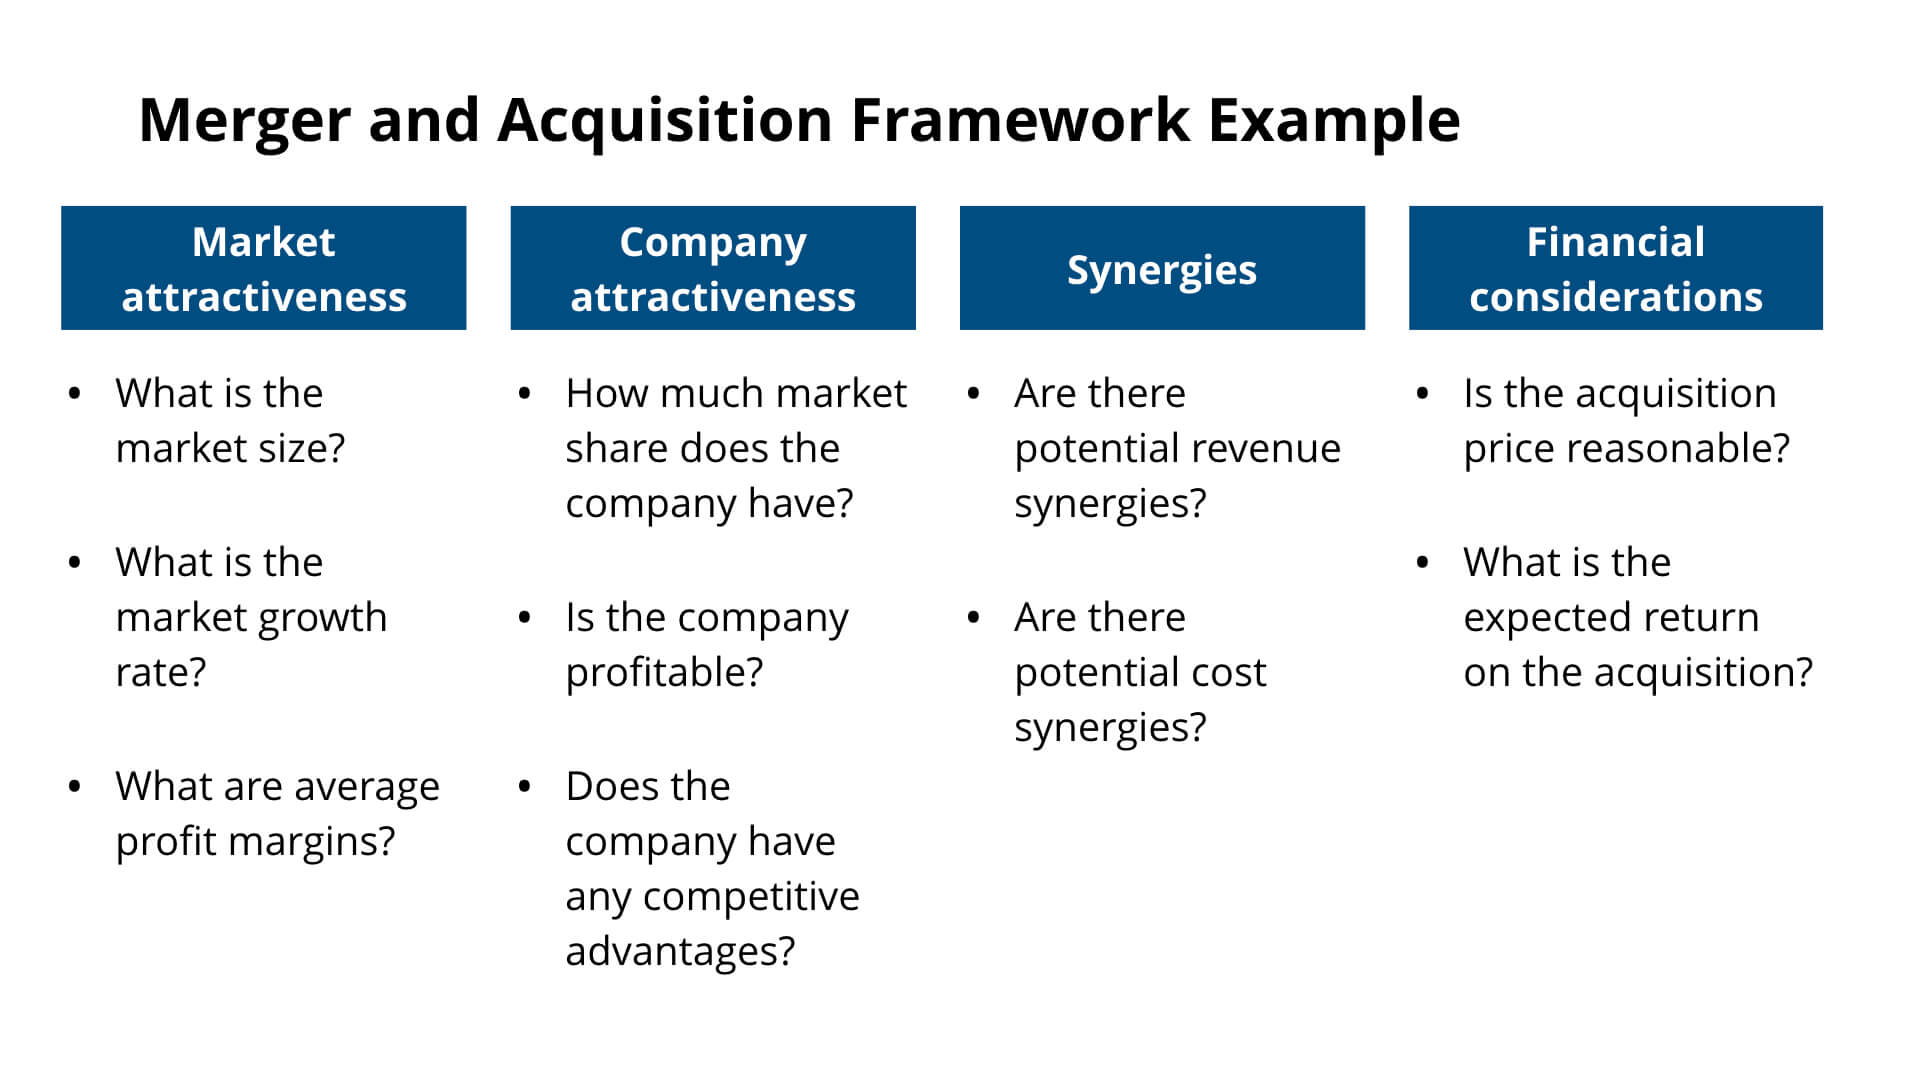 Merger and Acquisition Framework Example